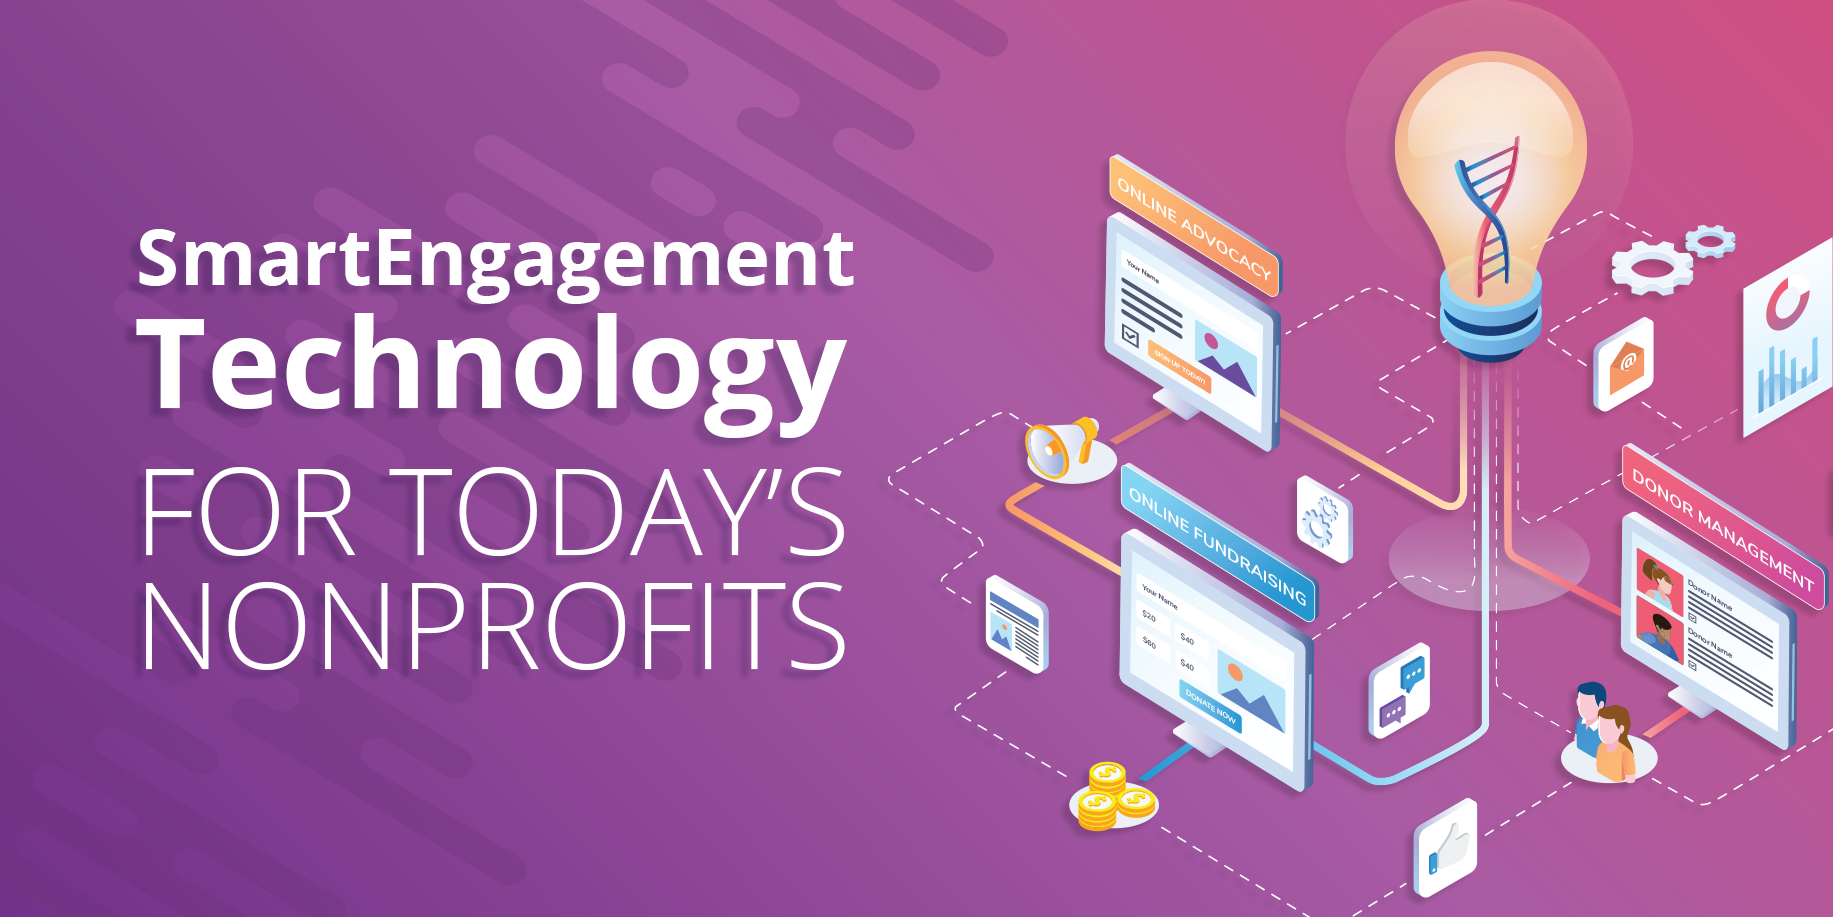 SmartEngagement: Technology for Today's Nonprofits